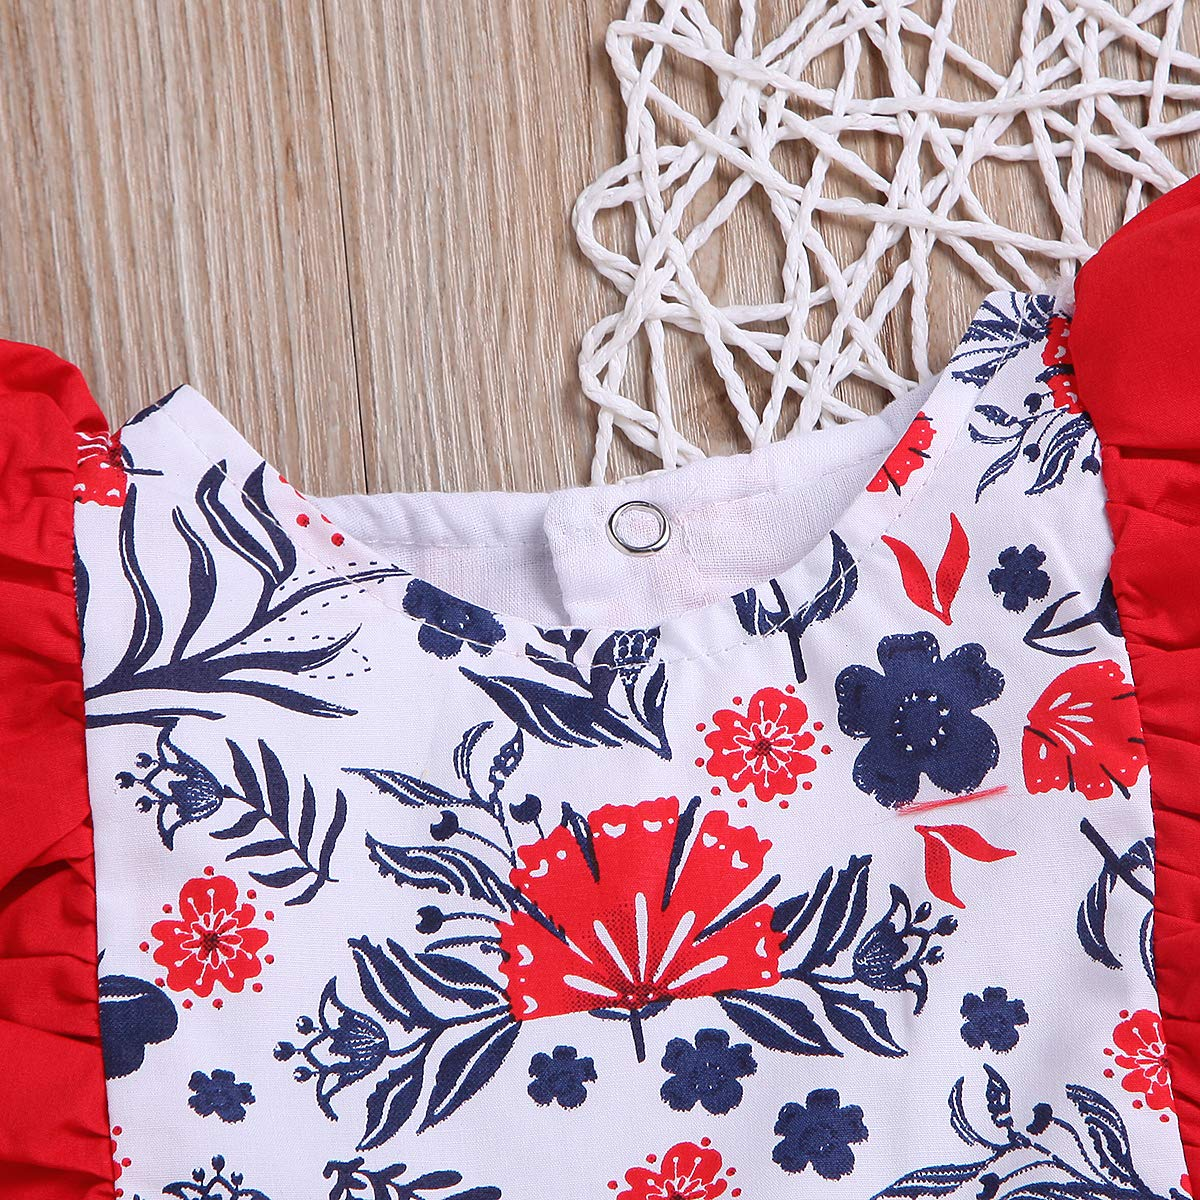 Red, 12-18 Months Toddler Kids Baby Girls Dress Lace Fly Sleeve Skirt Cute Floral Onesie Clothes Set